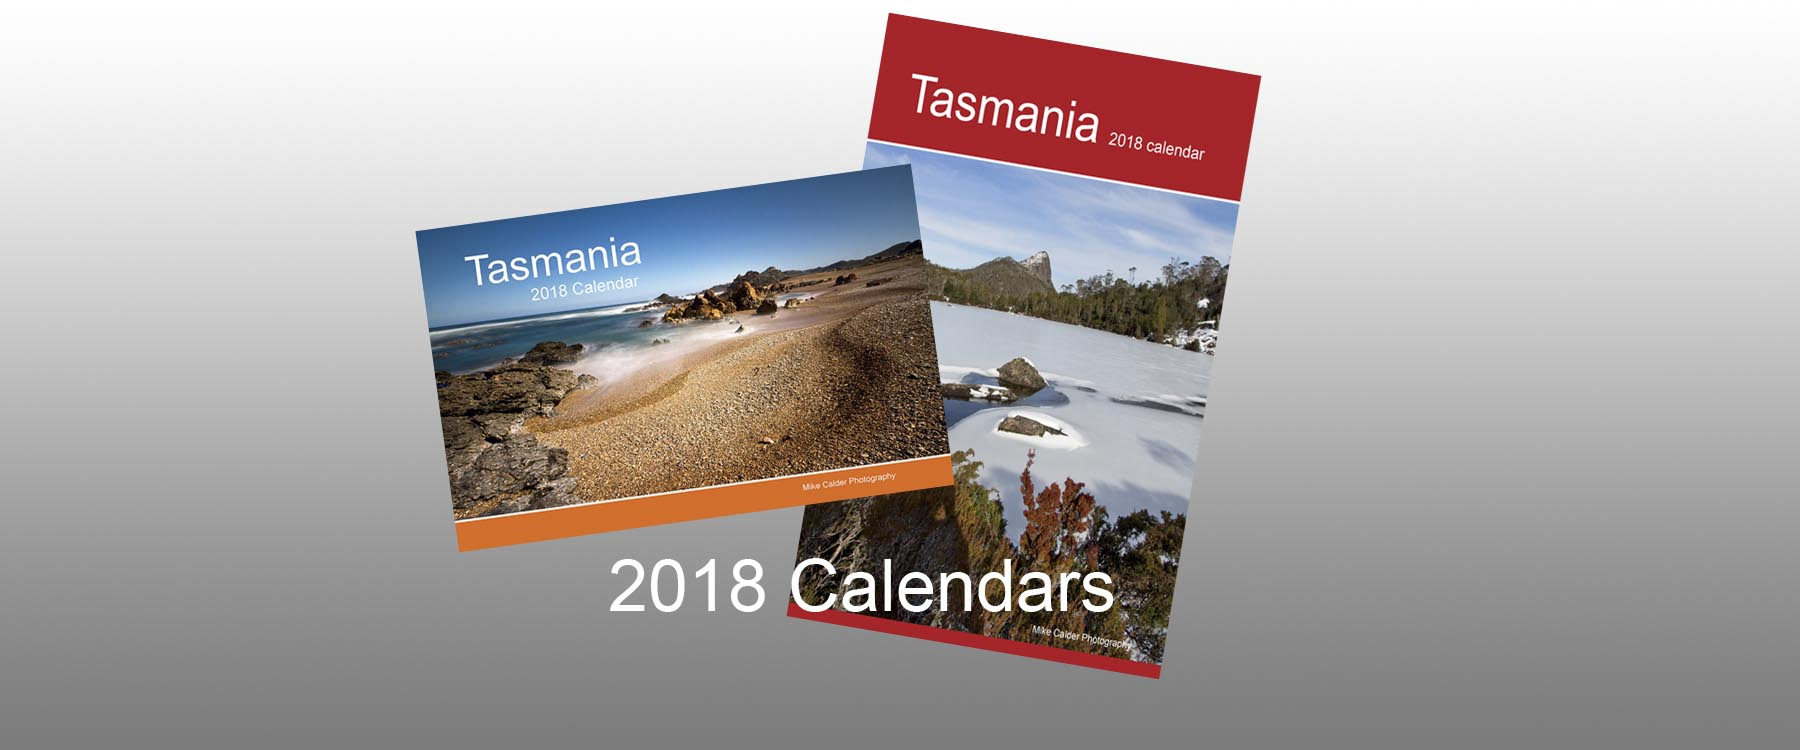 2018 calendars with background